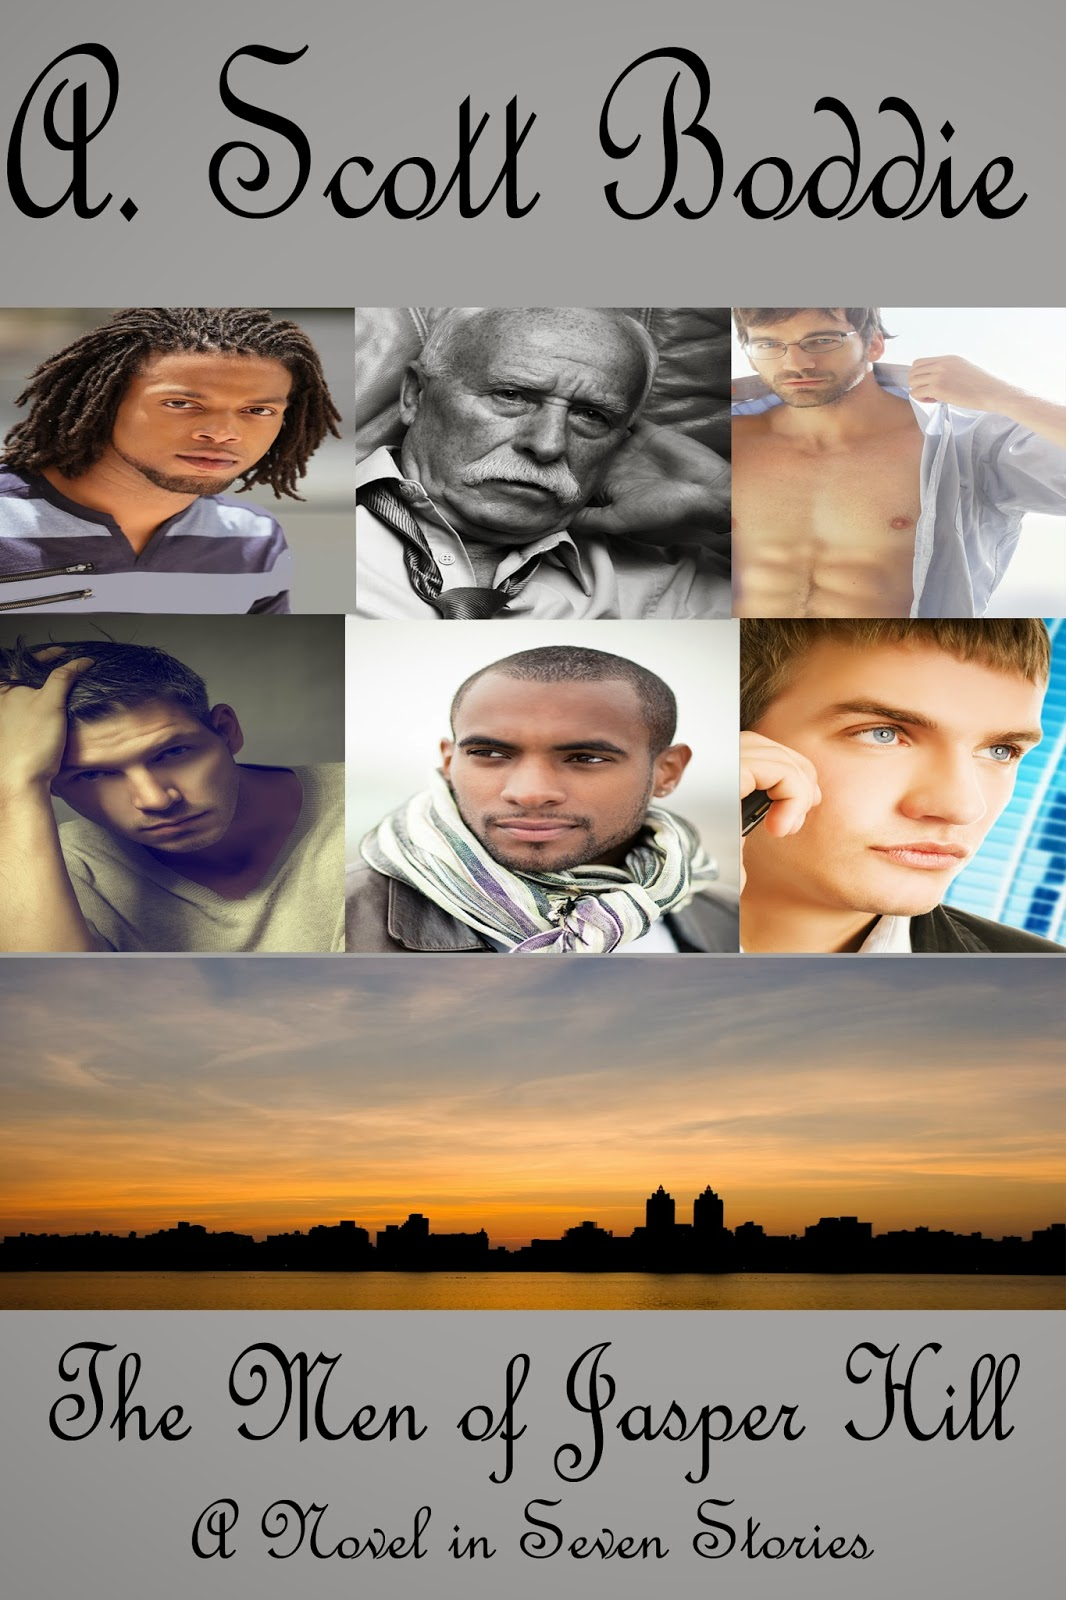 hindu single men in scotts hill You have given all the male models an opportunity to present themselves in the best possible wayi see the comfort zonelove your collection praveen :.